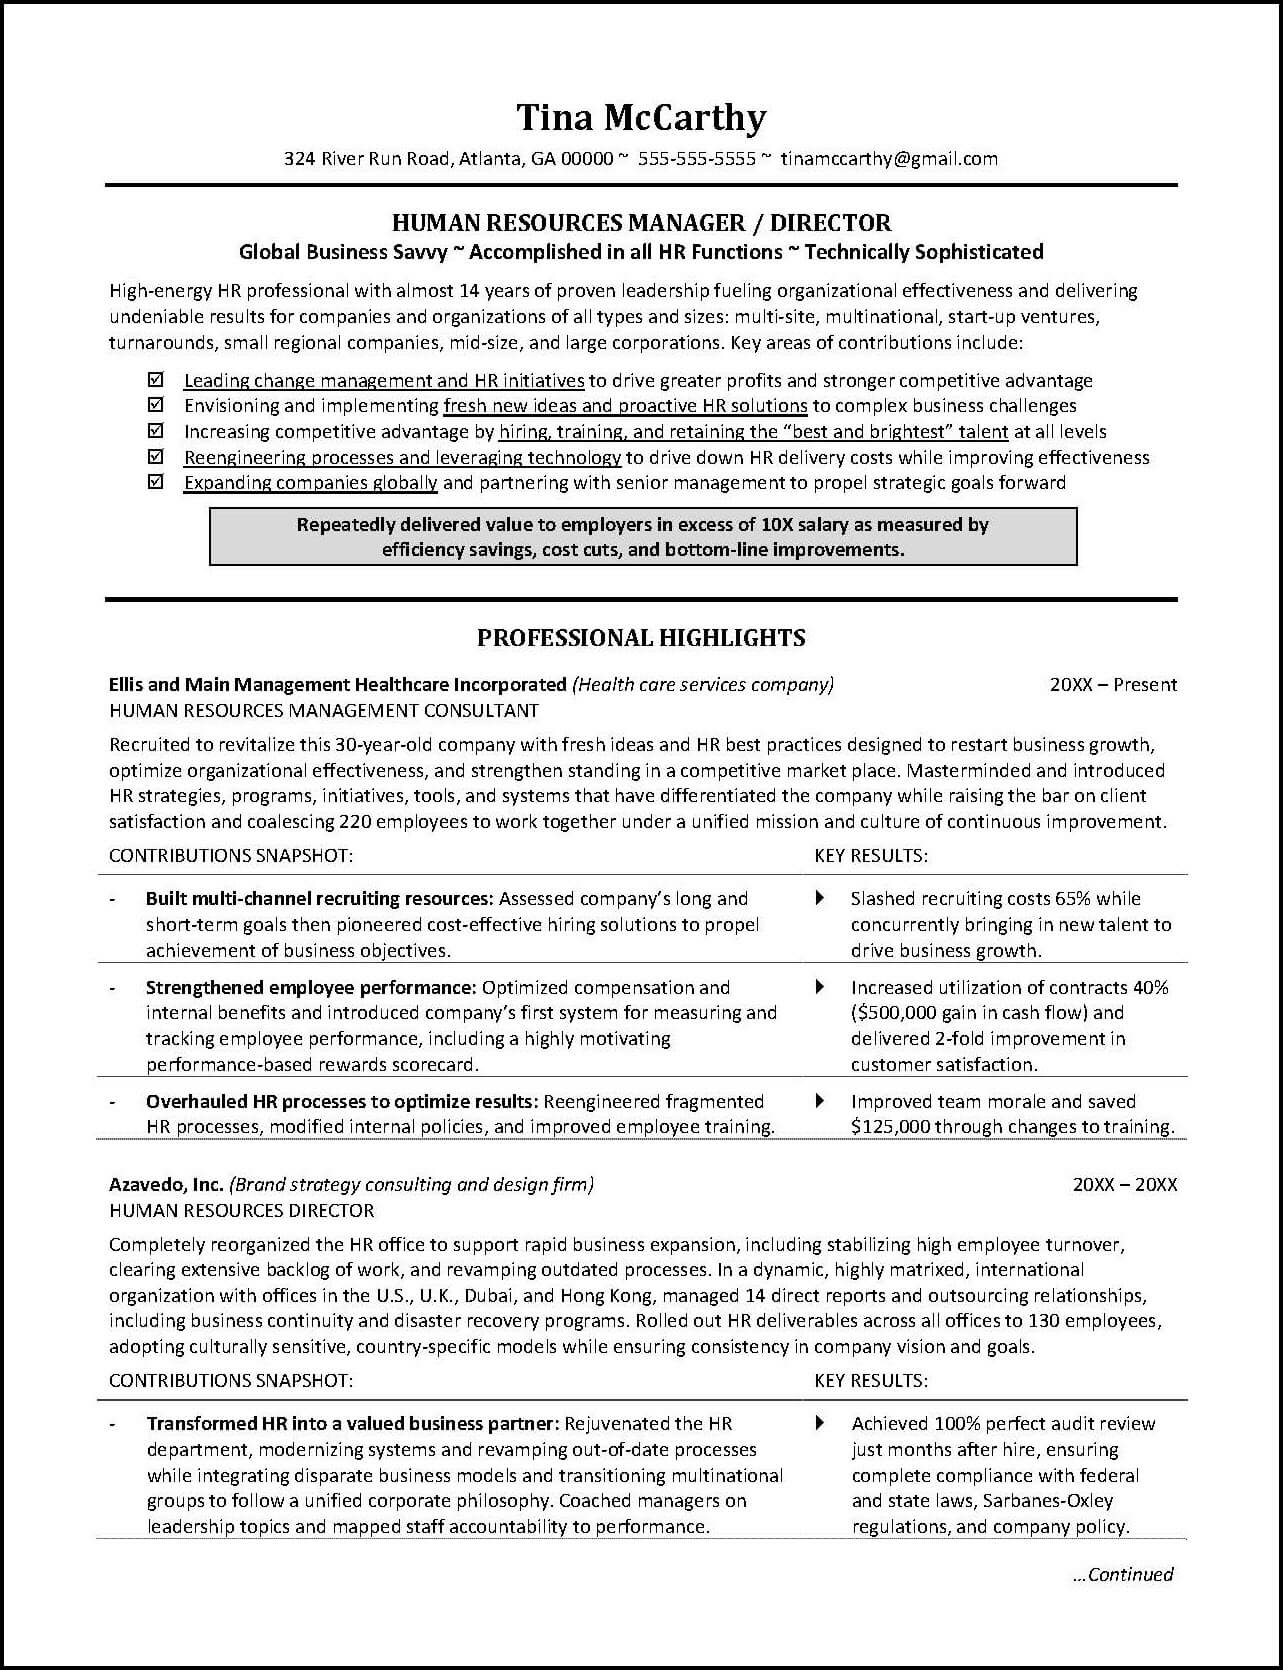 This Sample Human Resources Resume Is Just An Example To Show The Quality  And Style Of Our Professional Resume Writing Services.  Examples Of Human Resources Resumes